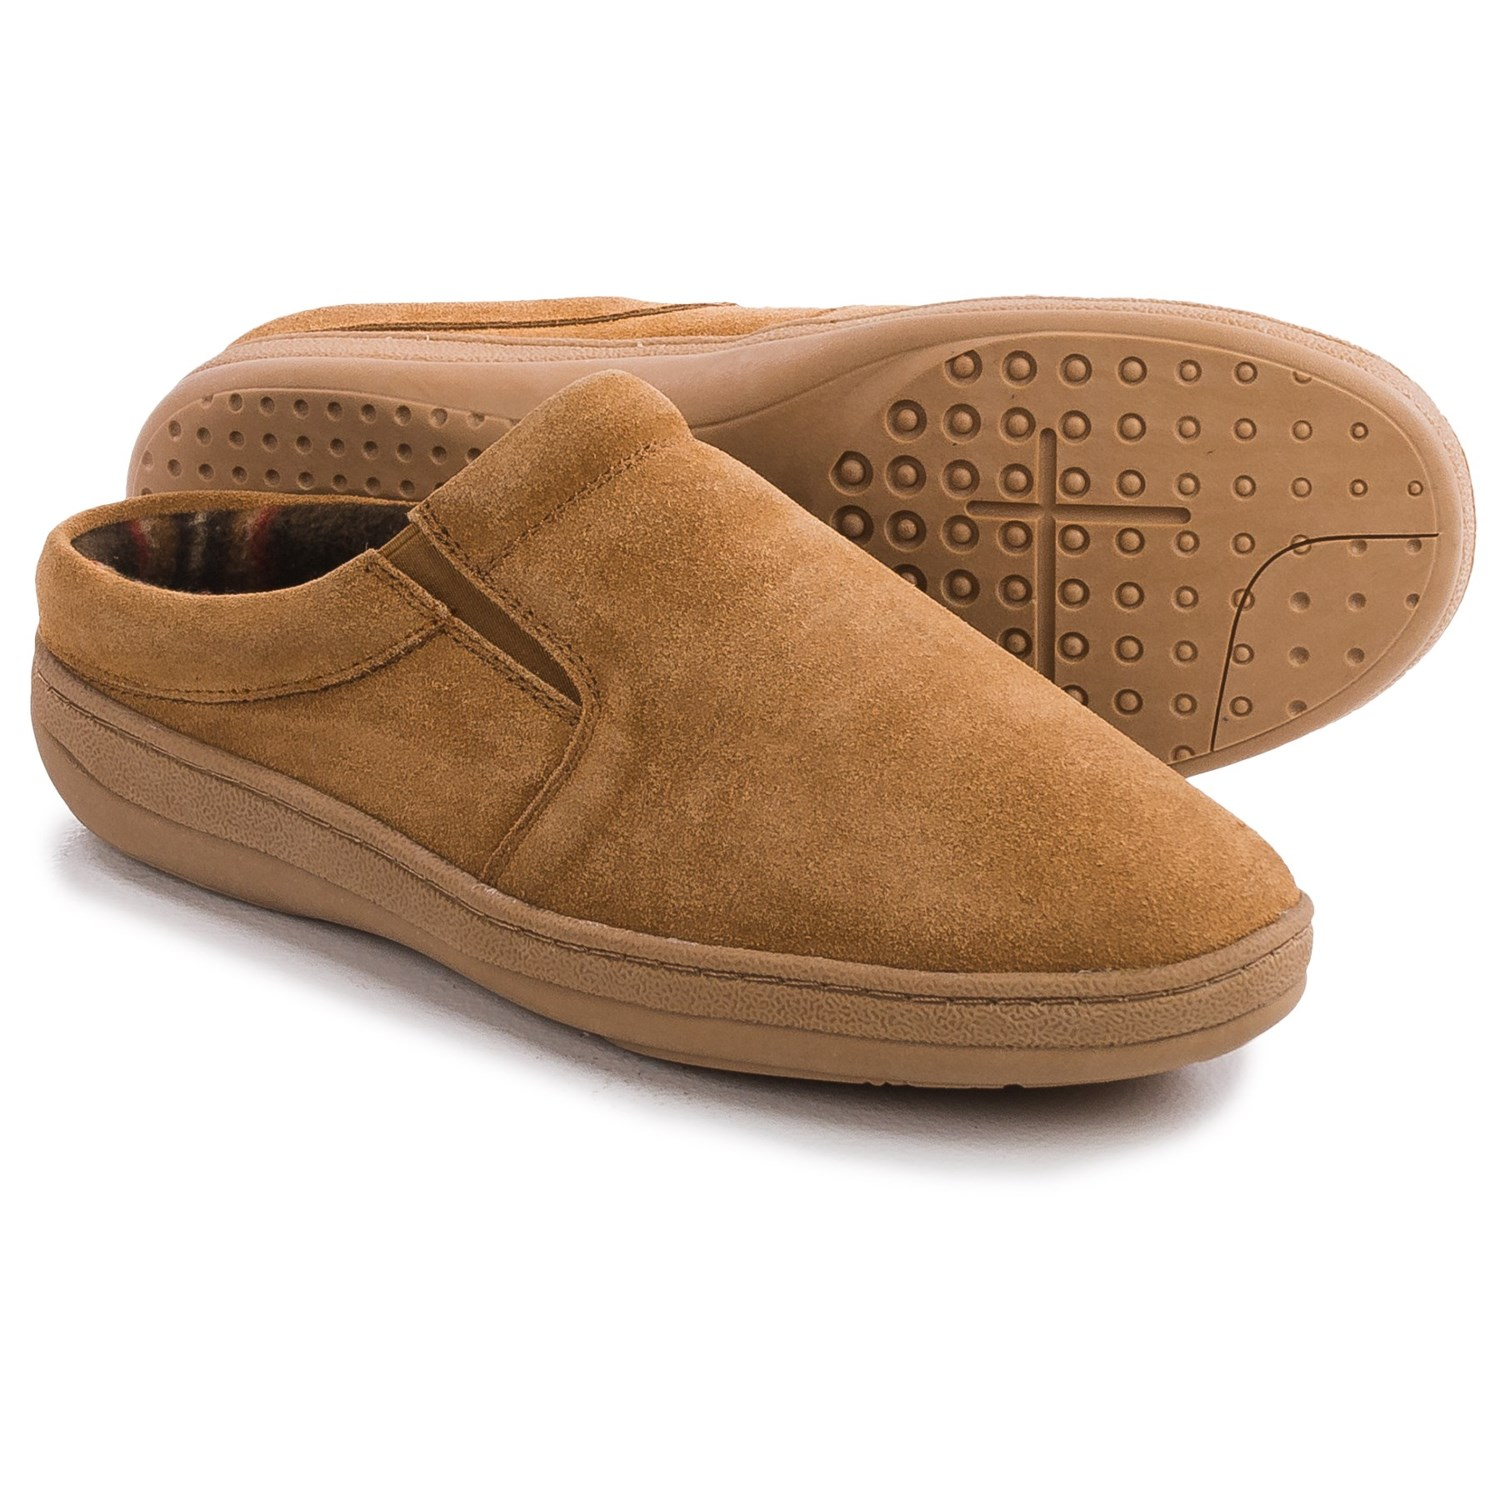 Boys Slippers Sale: Save Up to 50% Off! Shop paydayloansboise.gq's huge selection of Slippers for Boys - Over 70 styles available. FREE Shipping & Exchanges, and a % price guarantee!